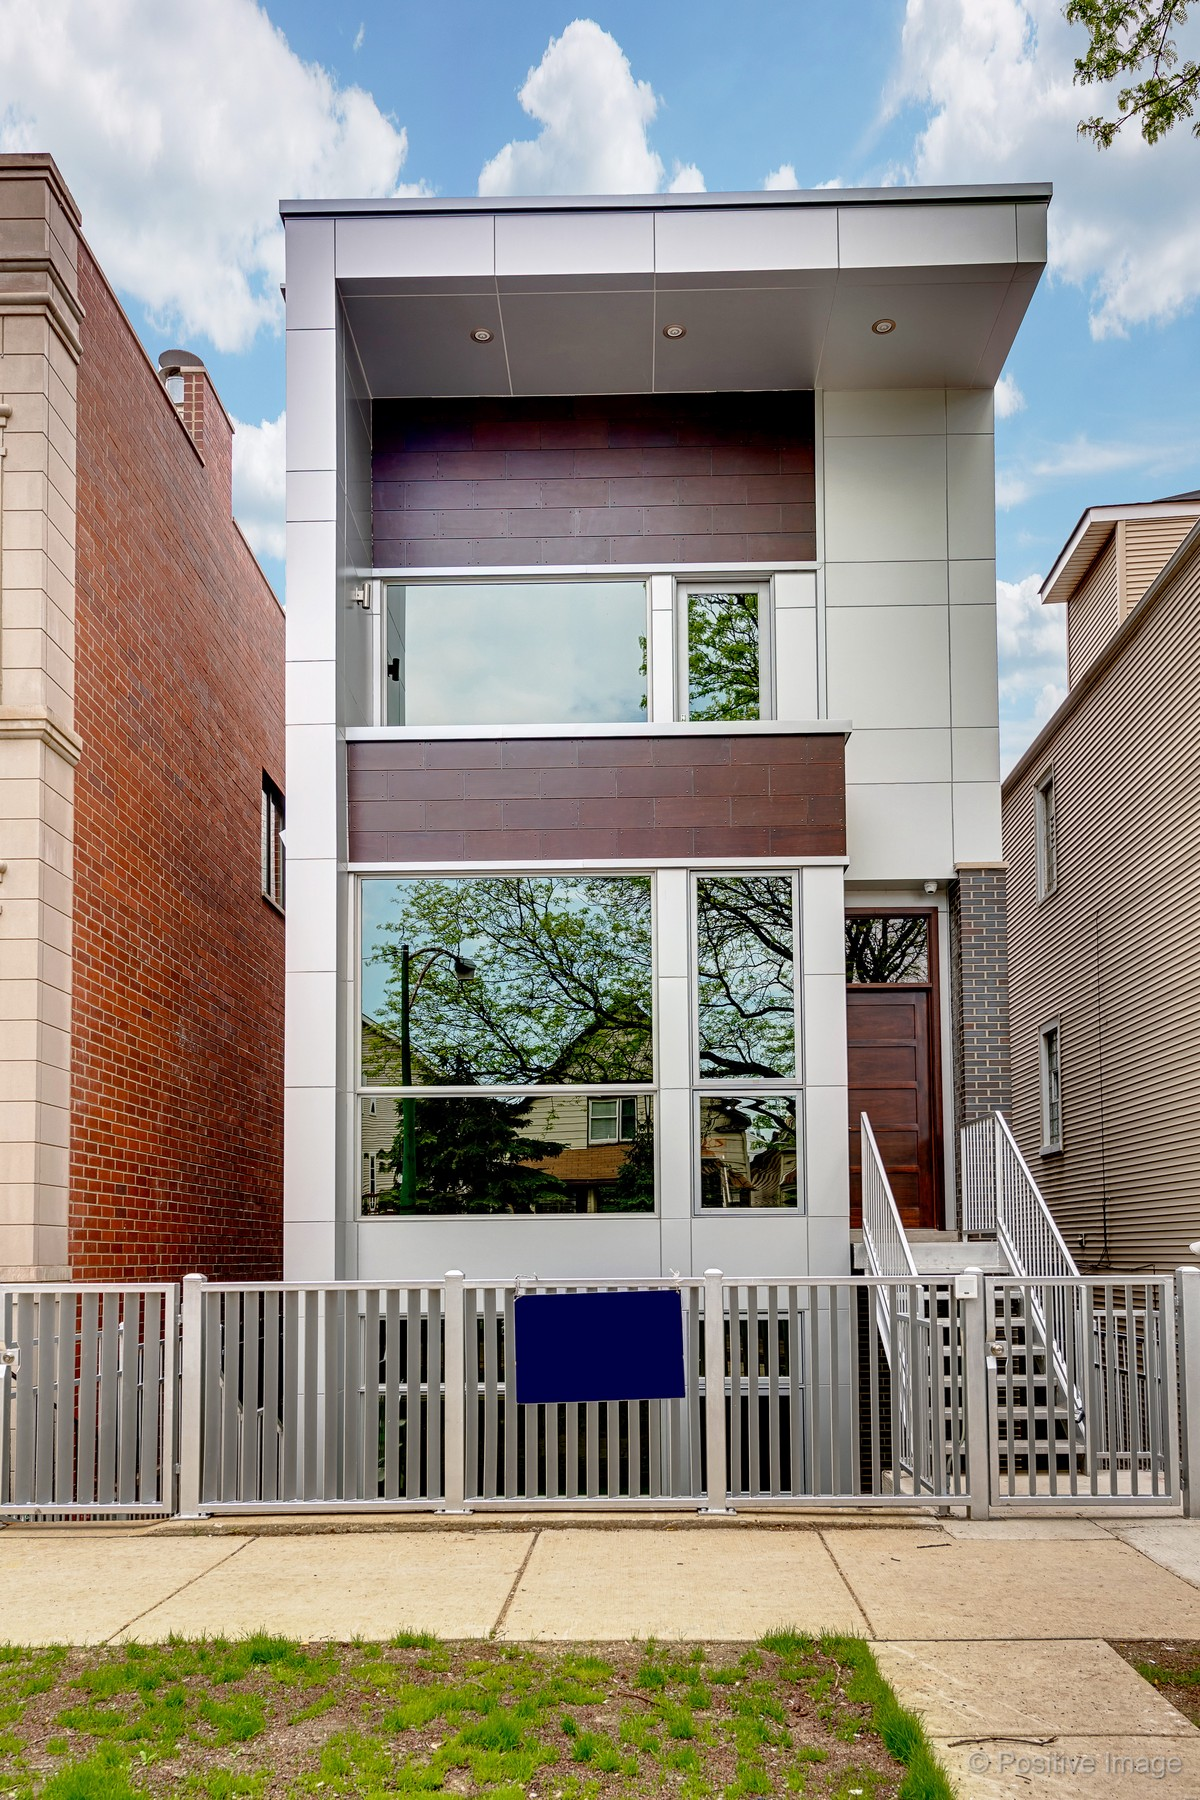 Частный односемейный дом для того Продажа на Lakeview New Construction Single Family Home in Burley School District! 1419 W Oakdale Avenue Lakeview, Chicago, Иллинойс, 60657 Соединенные Штаты